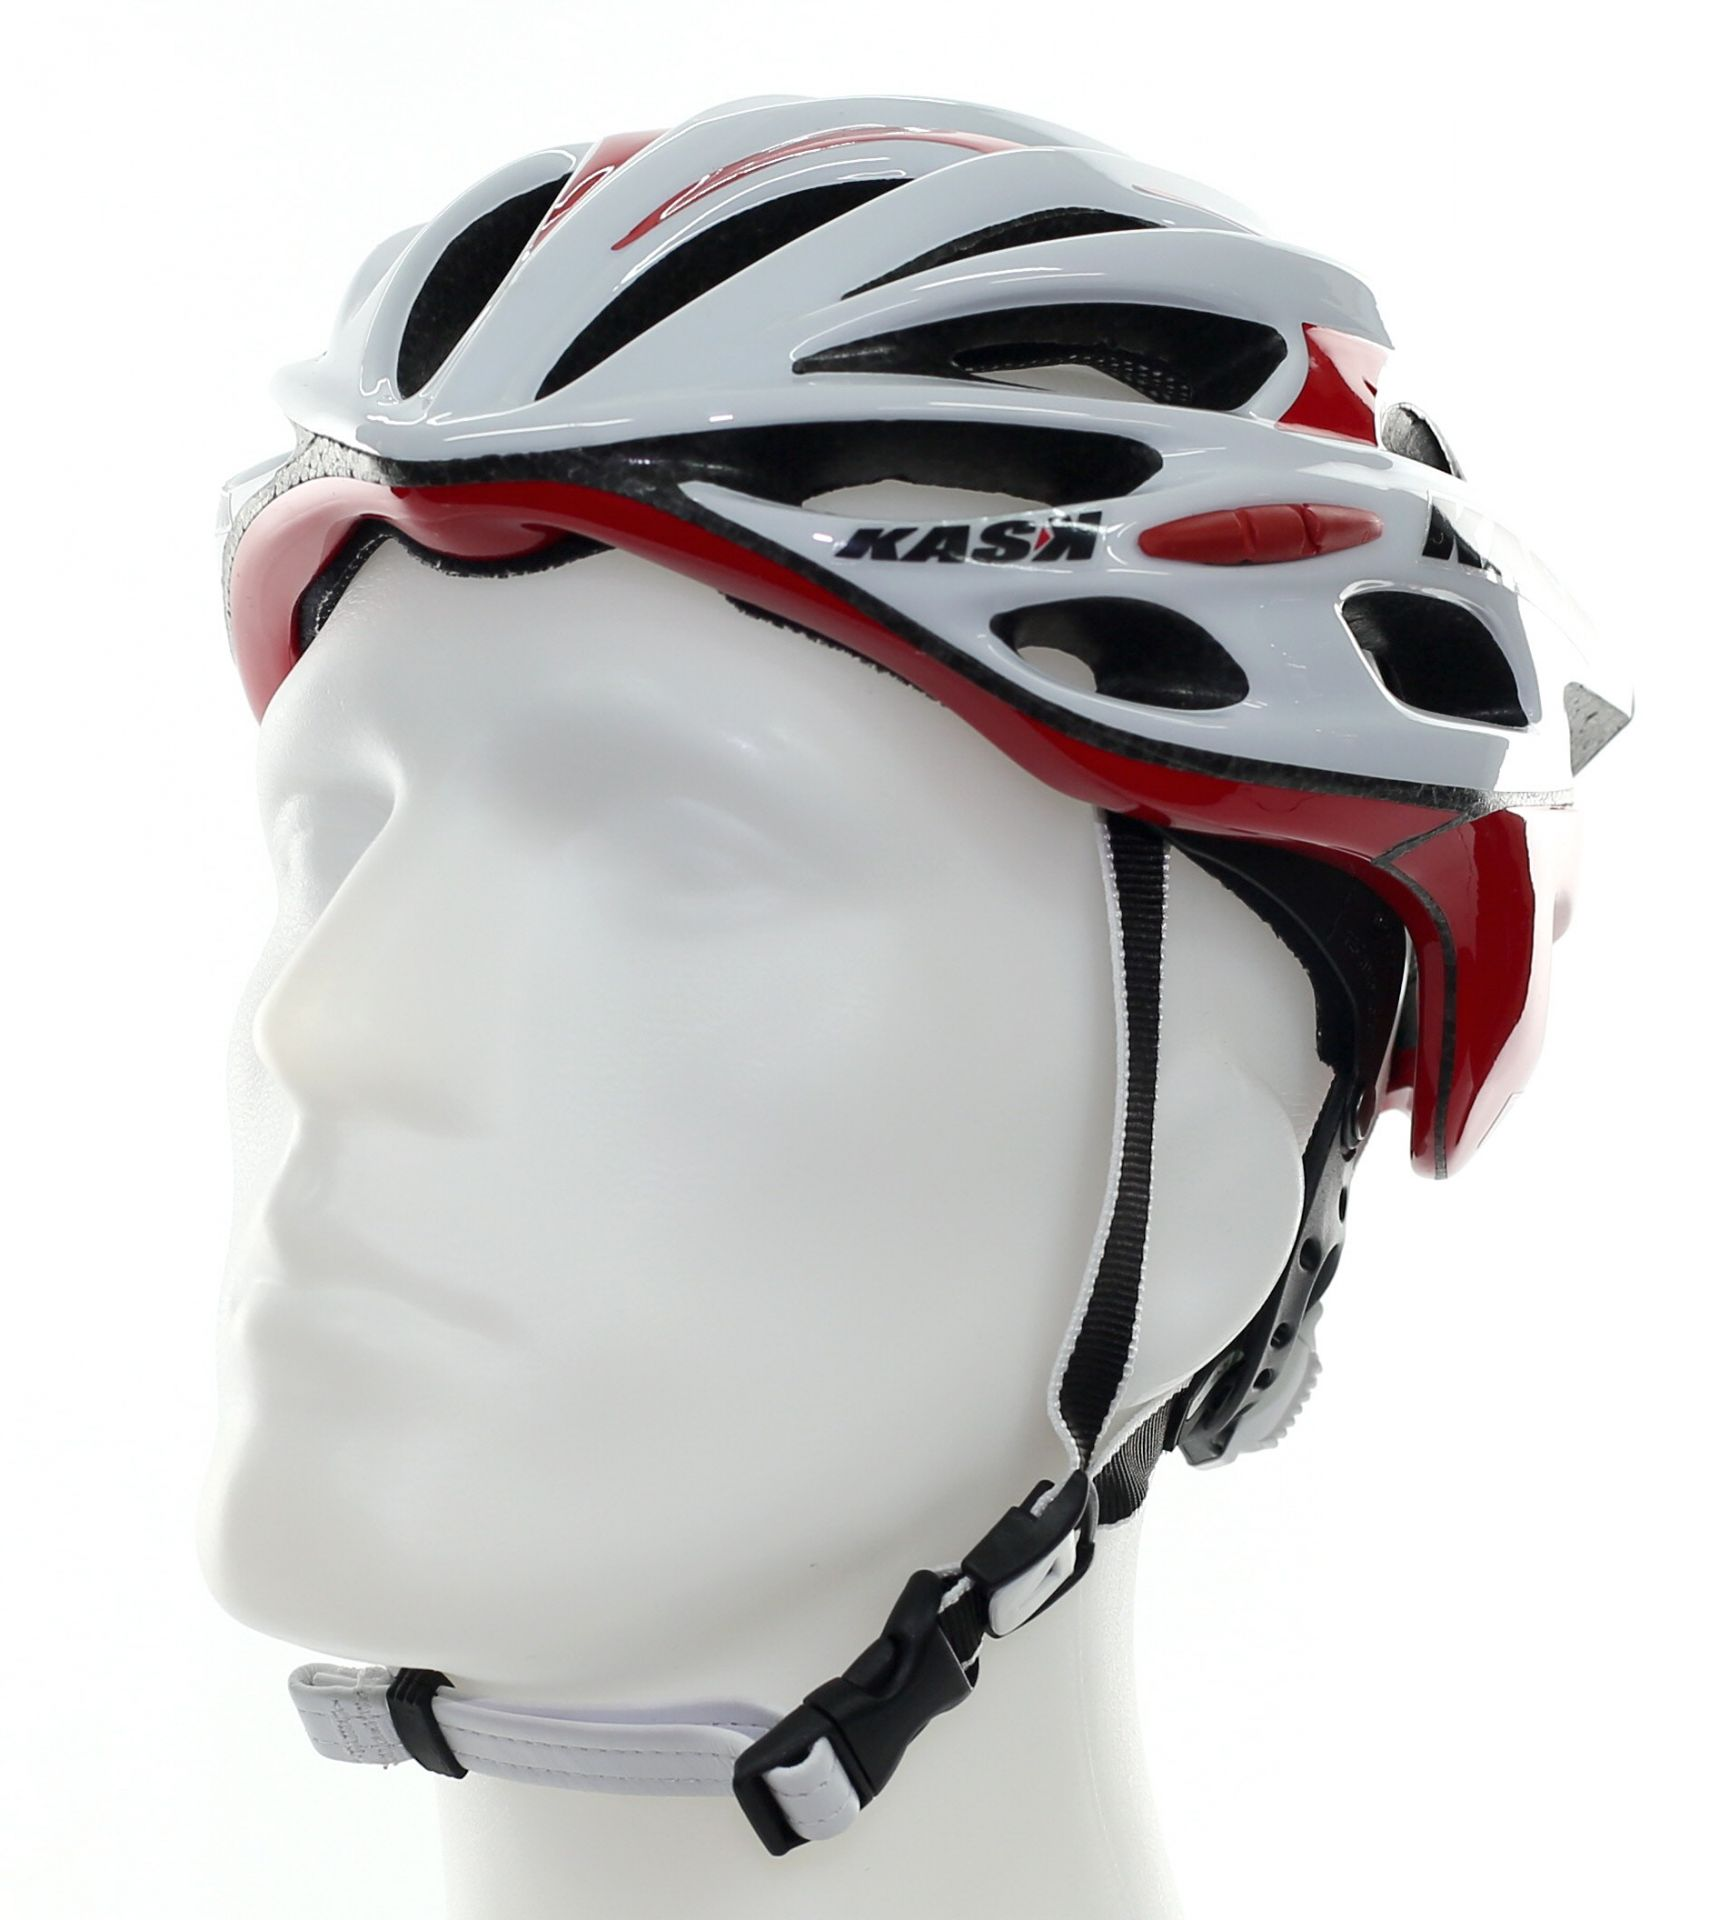 Casque KASK Mojito - Blanc/Rouge - M